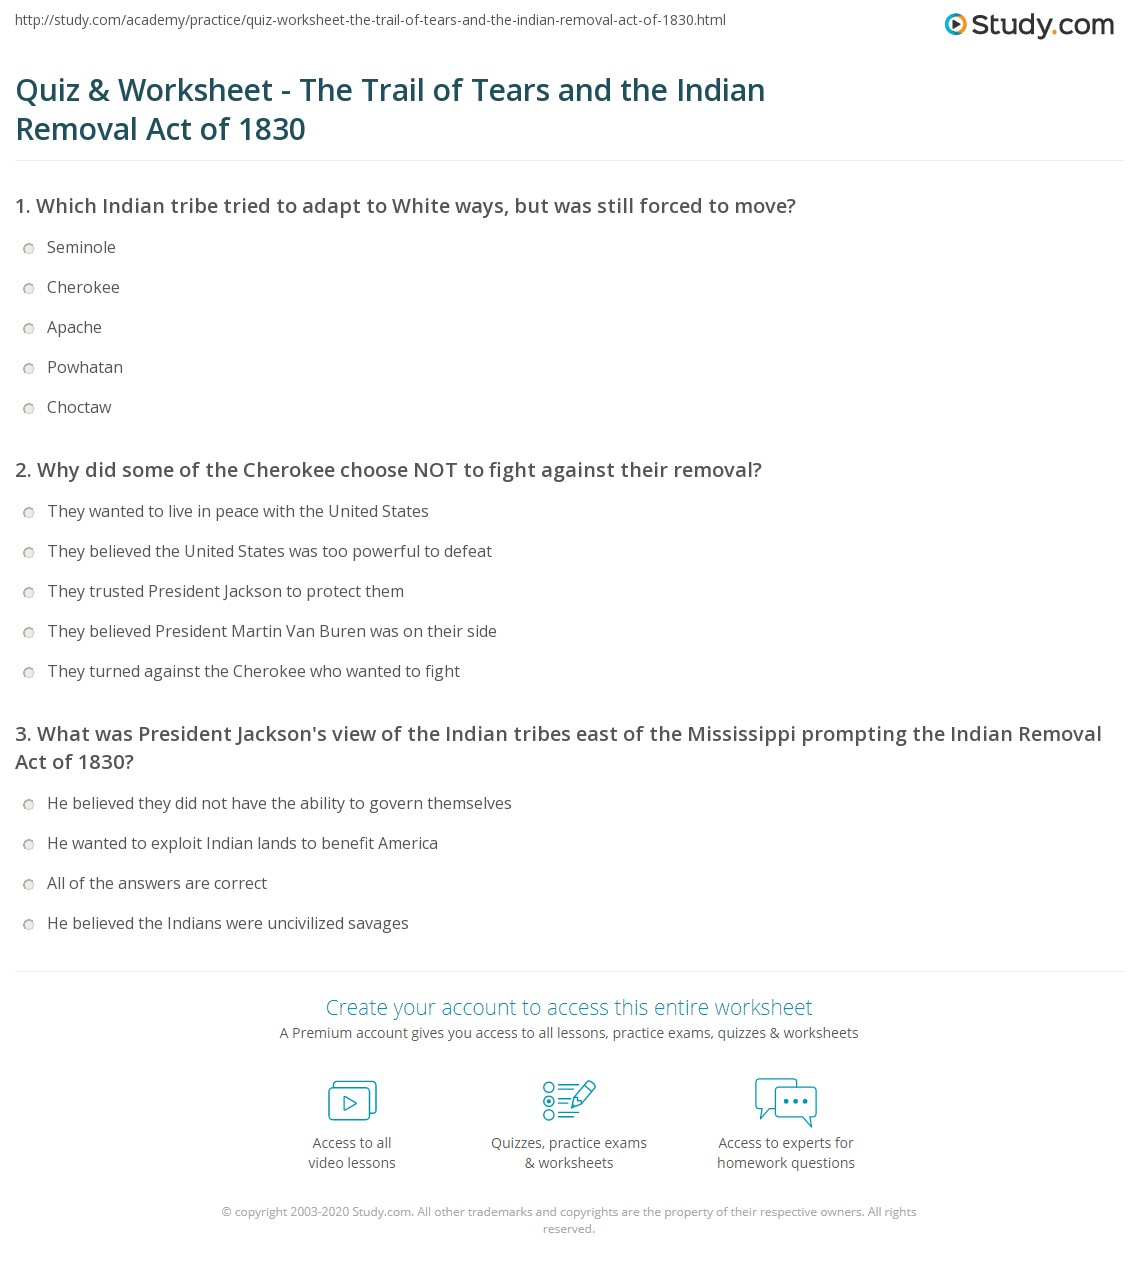 worksheet Trail Of Tears Worksheet quiz worksheet the trail of tears and indian removal act print jacksons 1830 worksheet